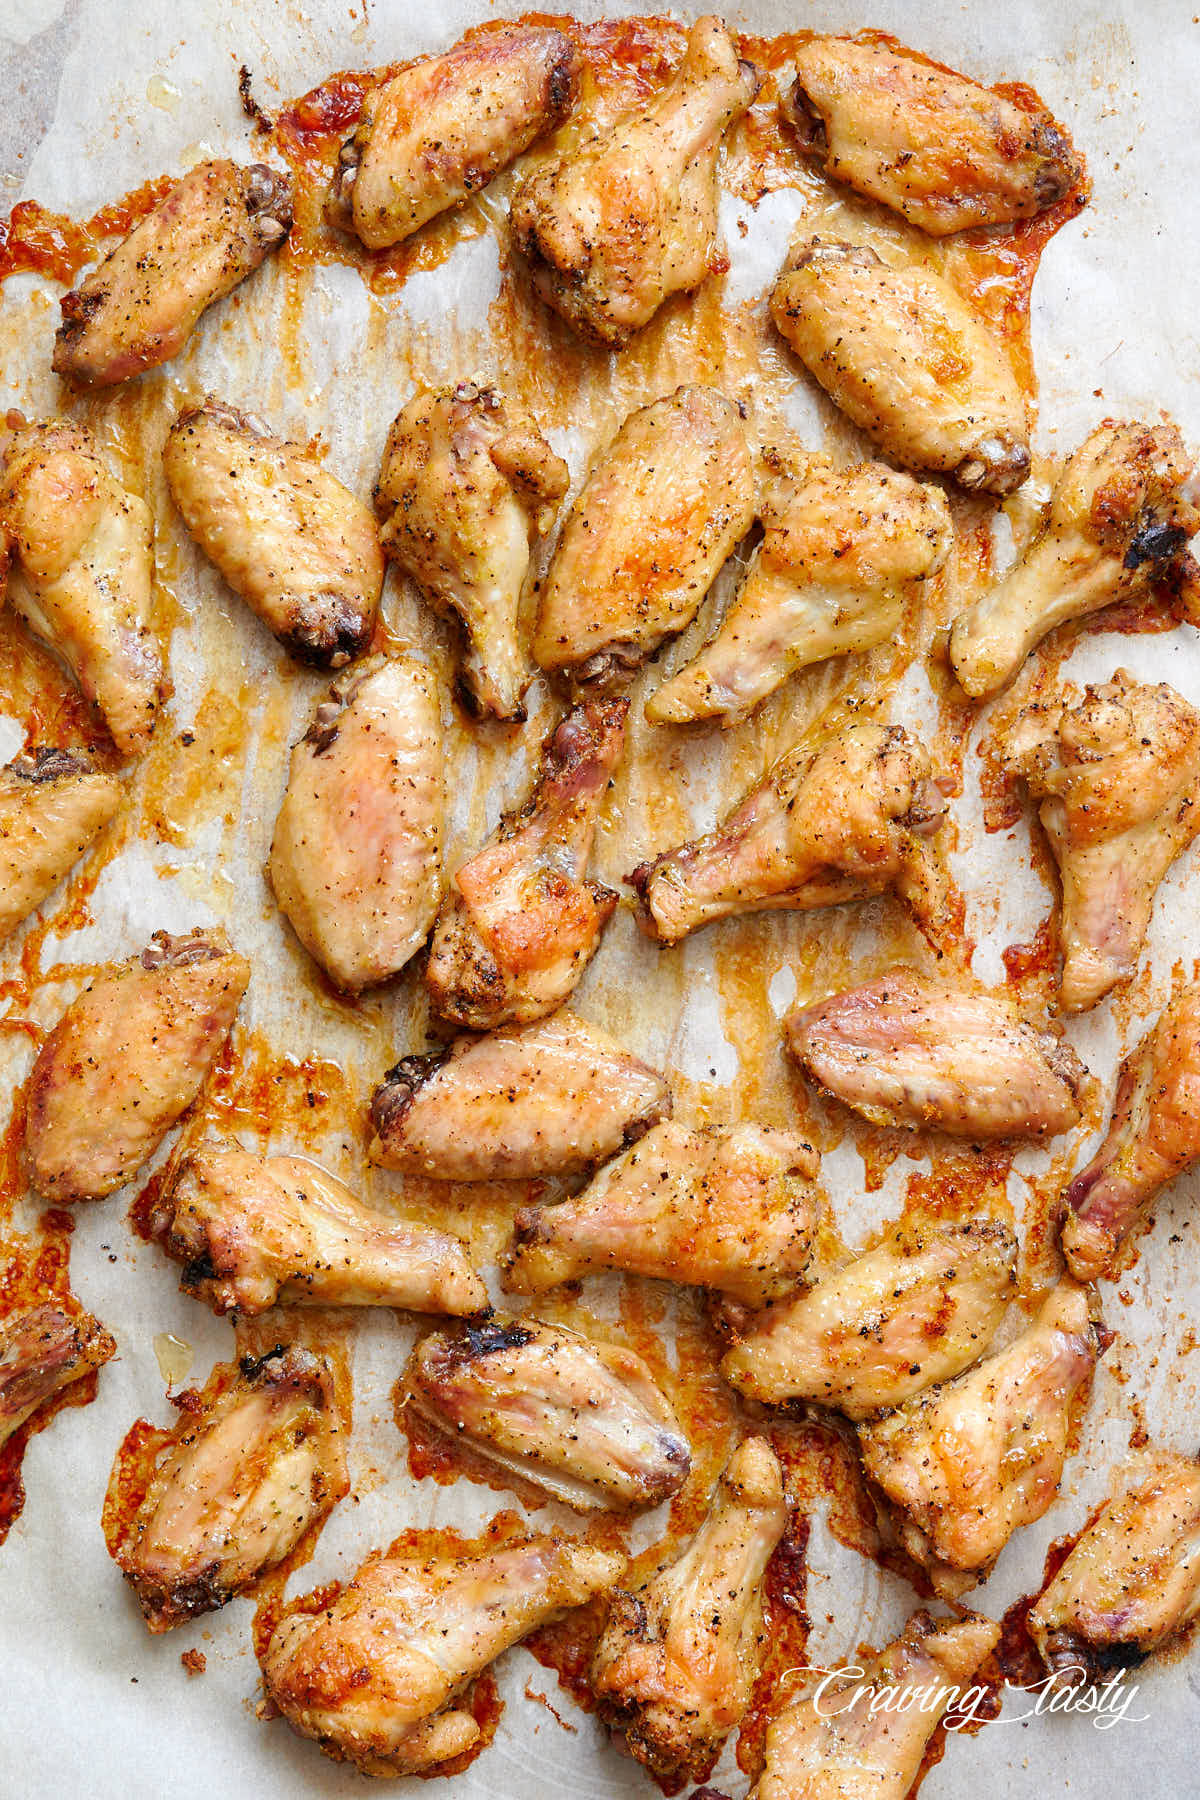 Lemon pepper chicken wings, fully baked, well-browned and crispy, on a baking tray lined with parchment paper.